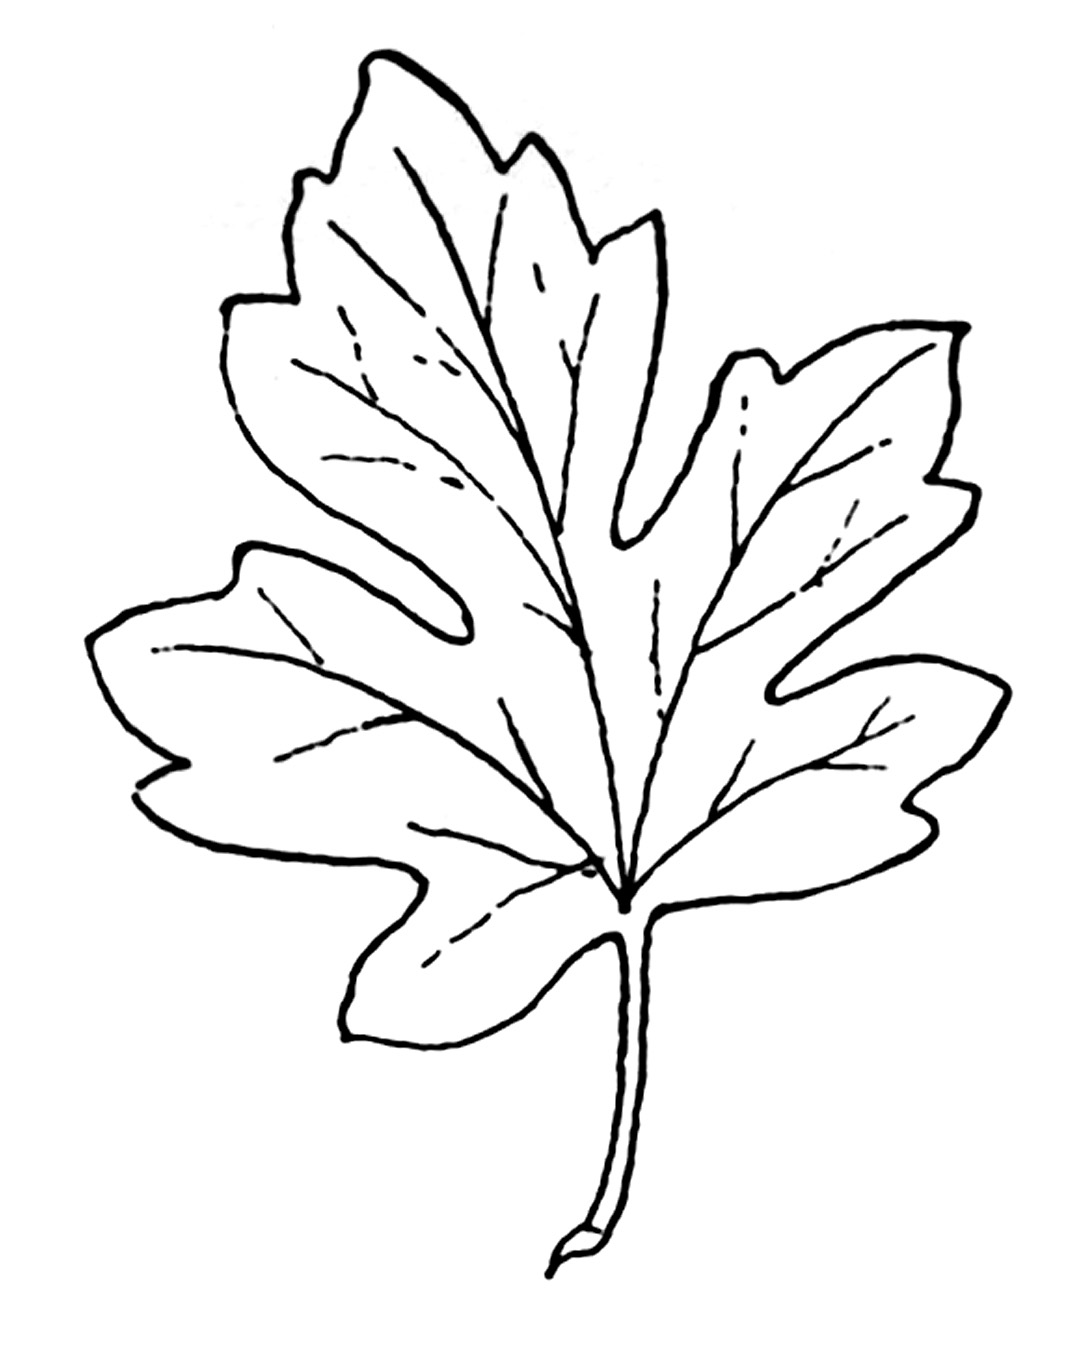 Autumn Leaf Outline Drawing